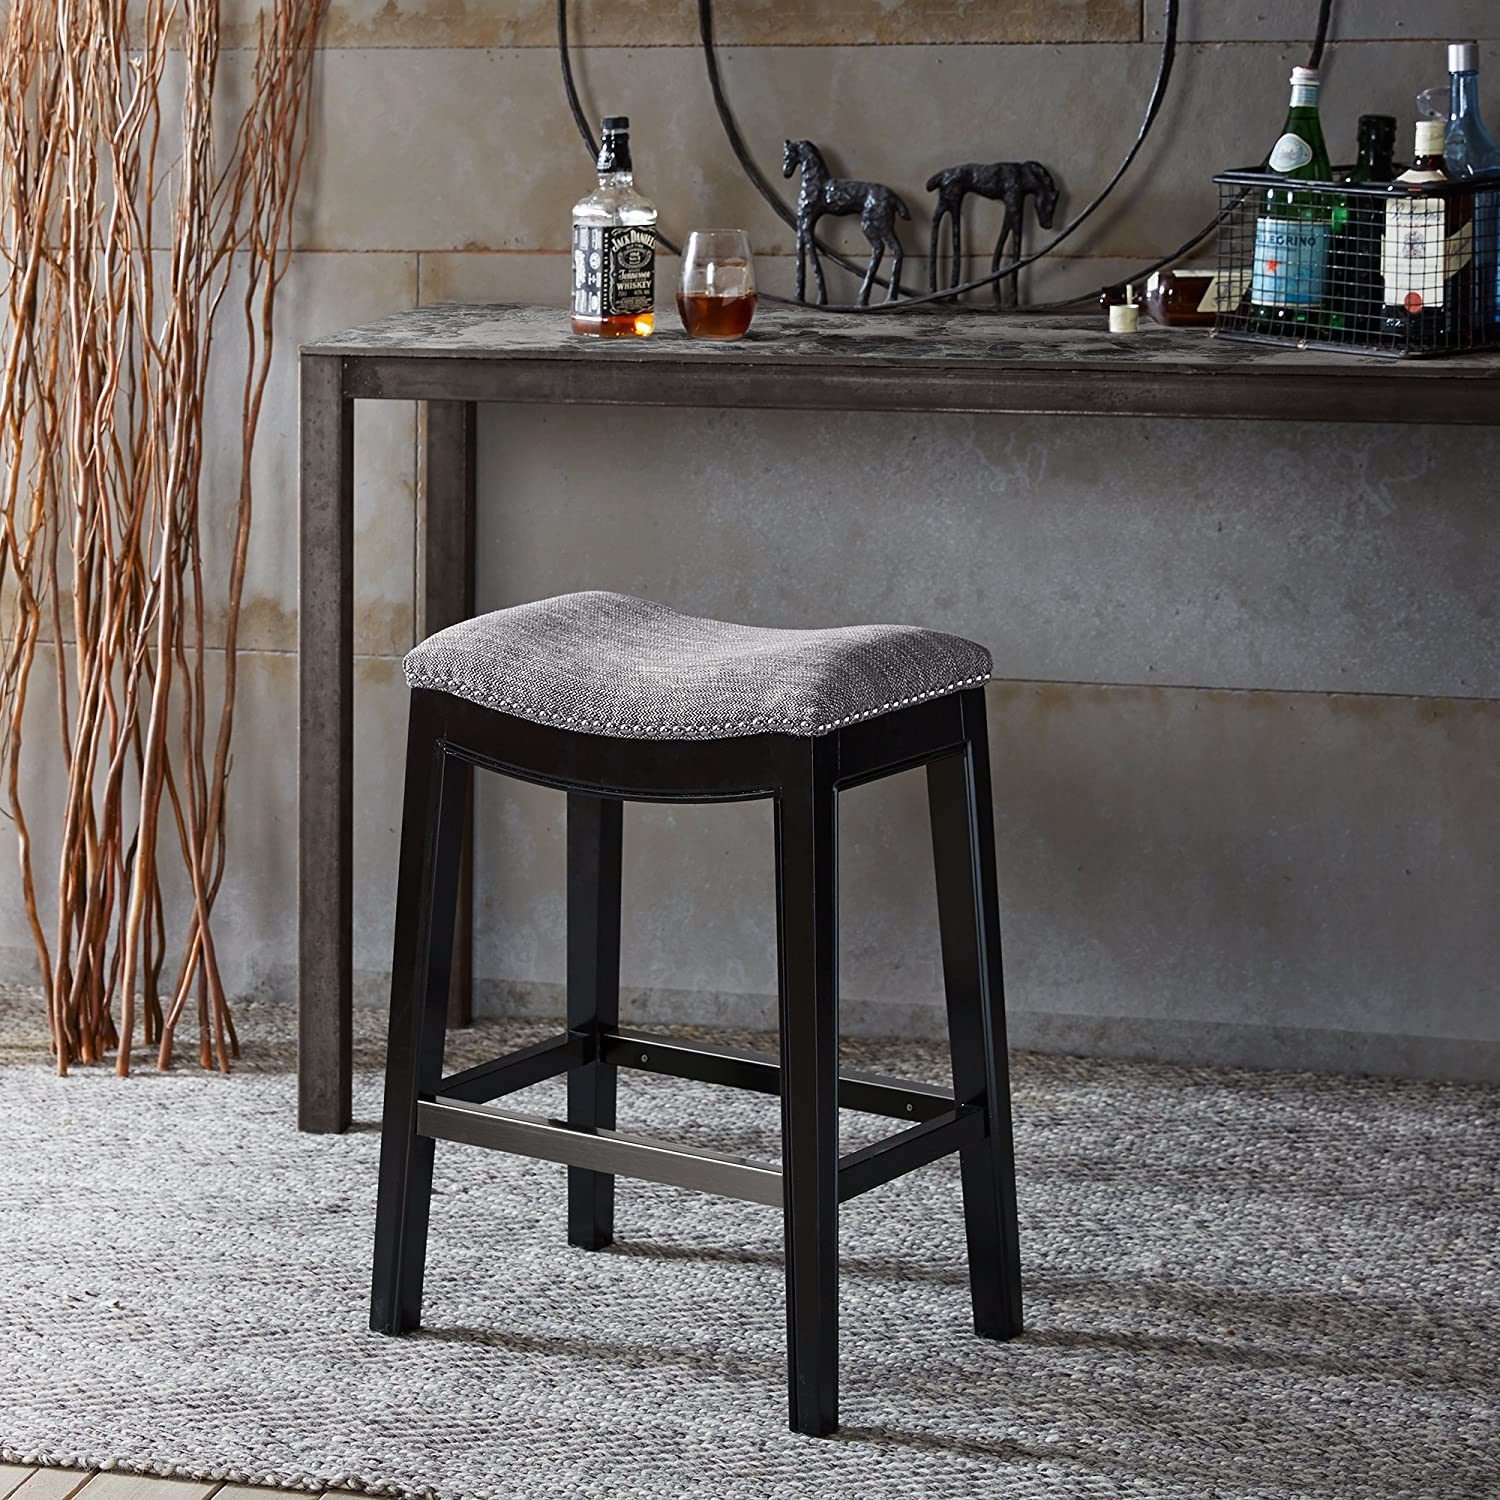 Madison Park Belfast Bar Stools - Hardwood, Fabric Kitchen Stool - Grey, Black, Classic Style Bar Height Stools - 1 Piece Silver Nail Head Bar Furniture For Home